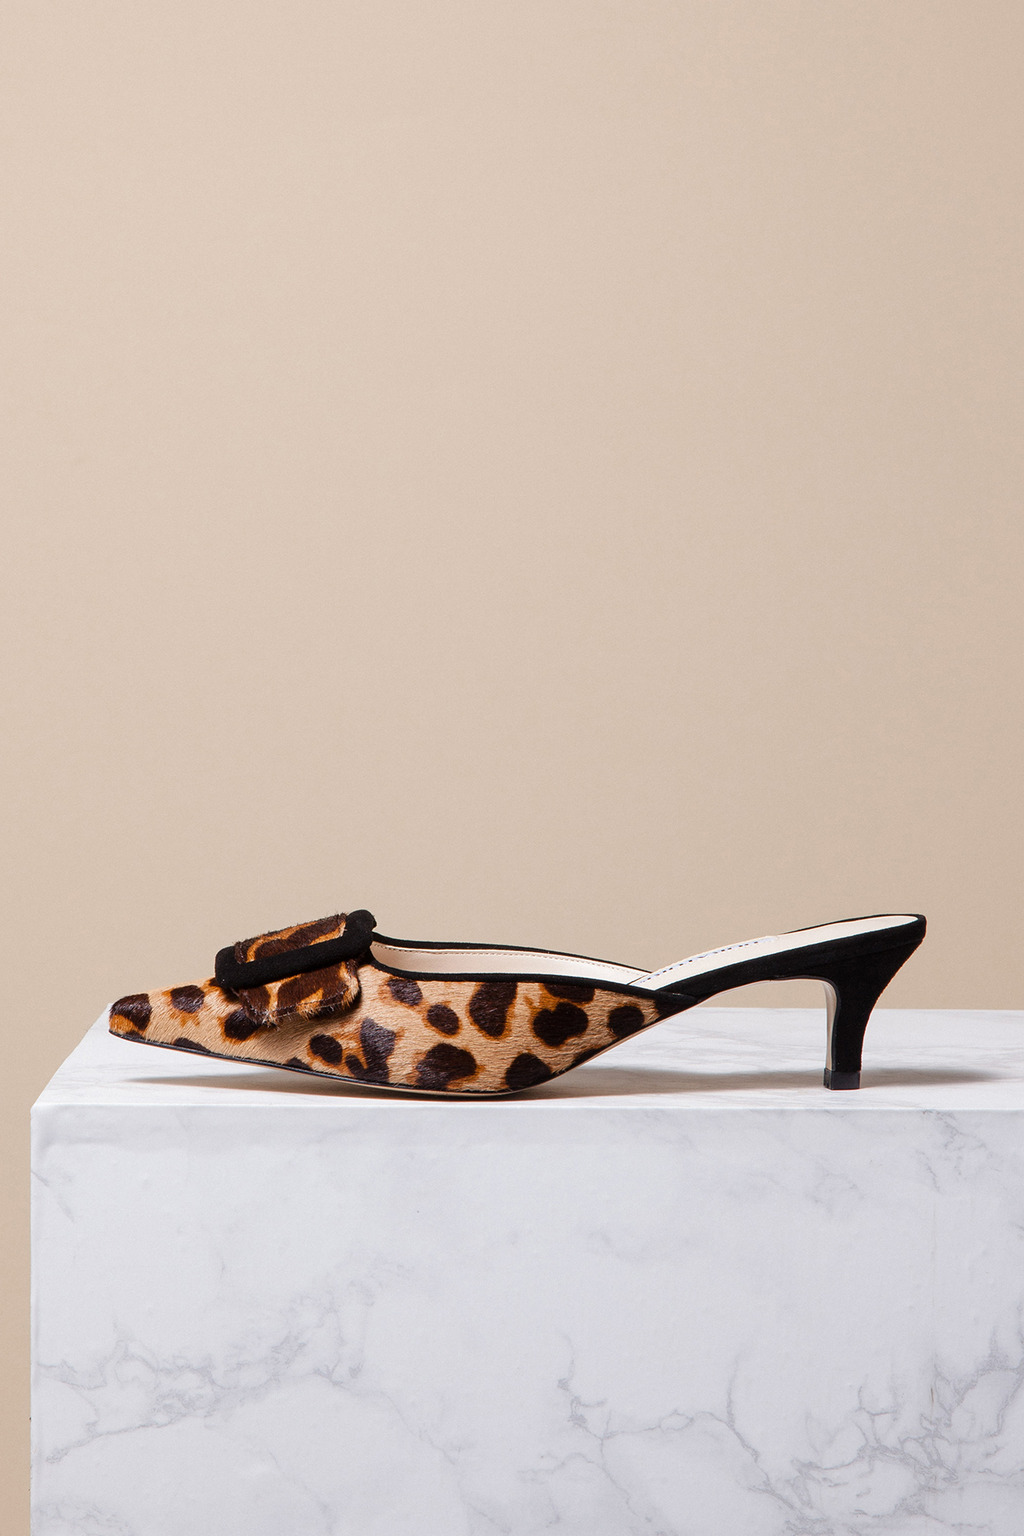 DORATORE Arci Leopard - Women's Shoes : Republic of Korea